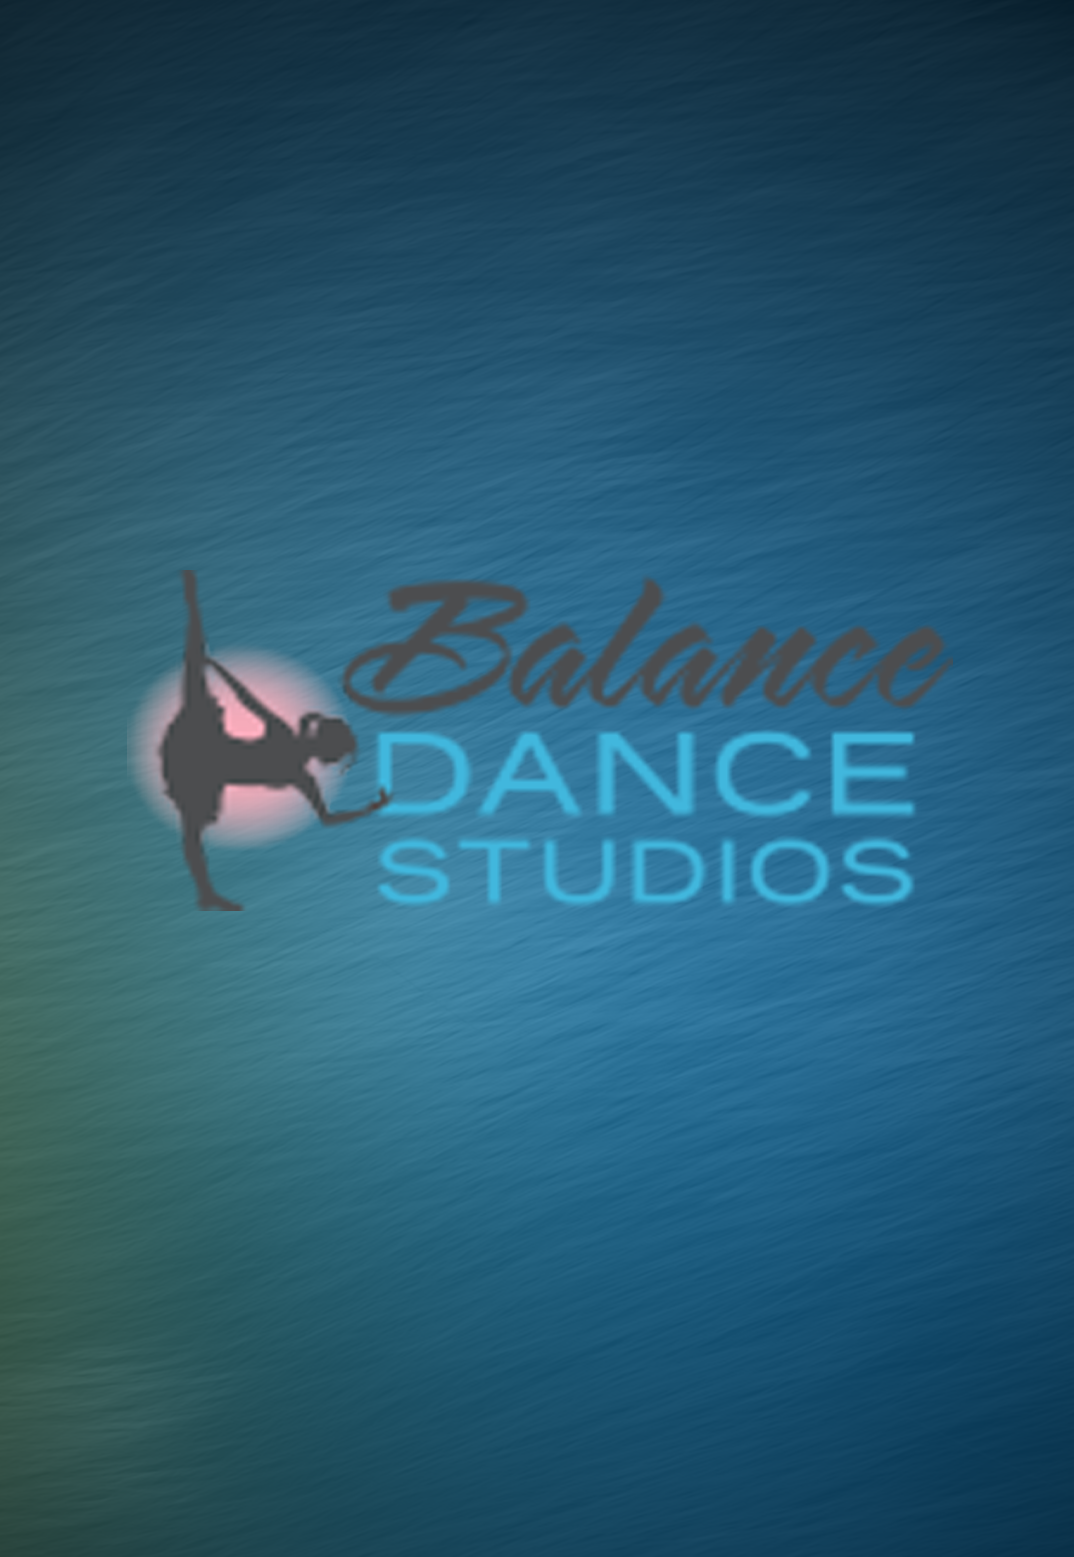 BALANCE DANCE STUDIO MAY 14, 2016 RECITAL ACT 3 ONLY